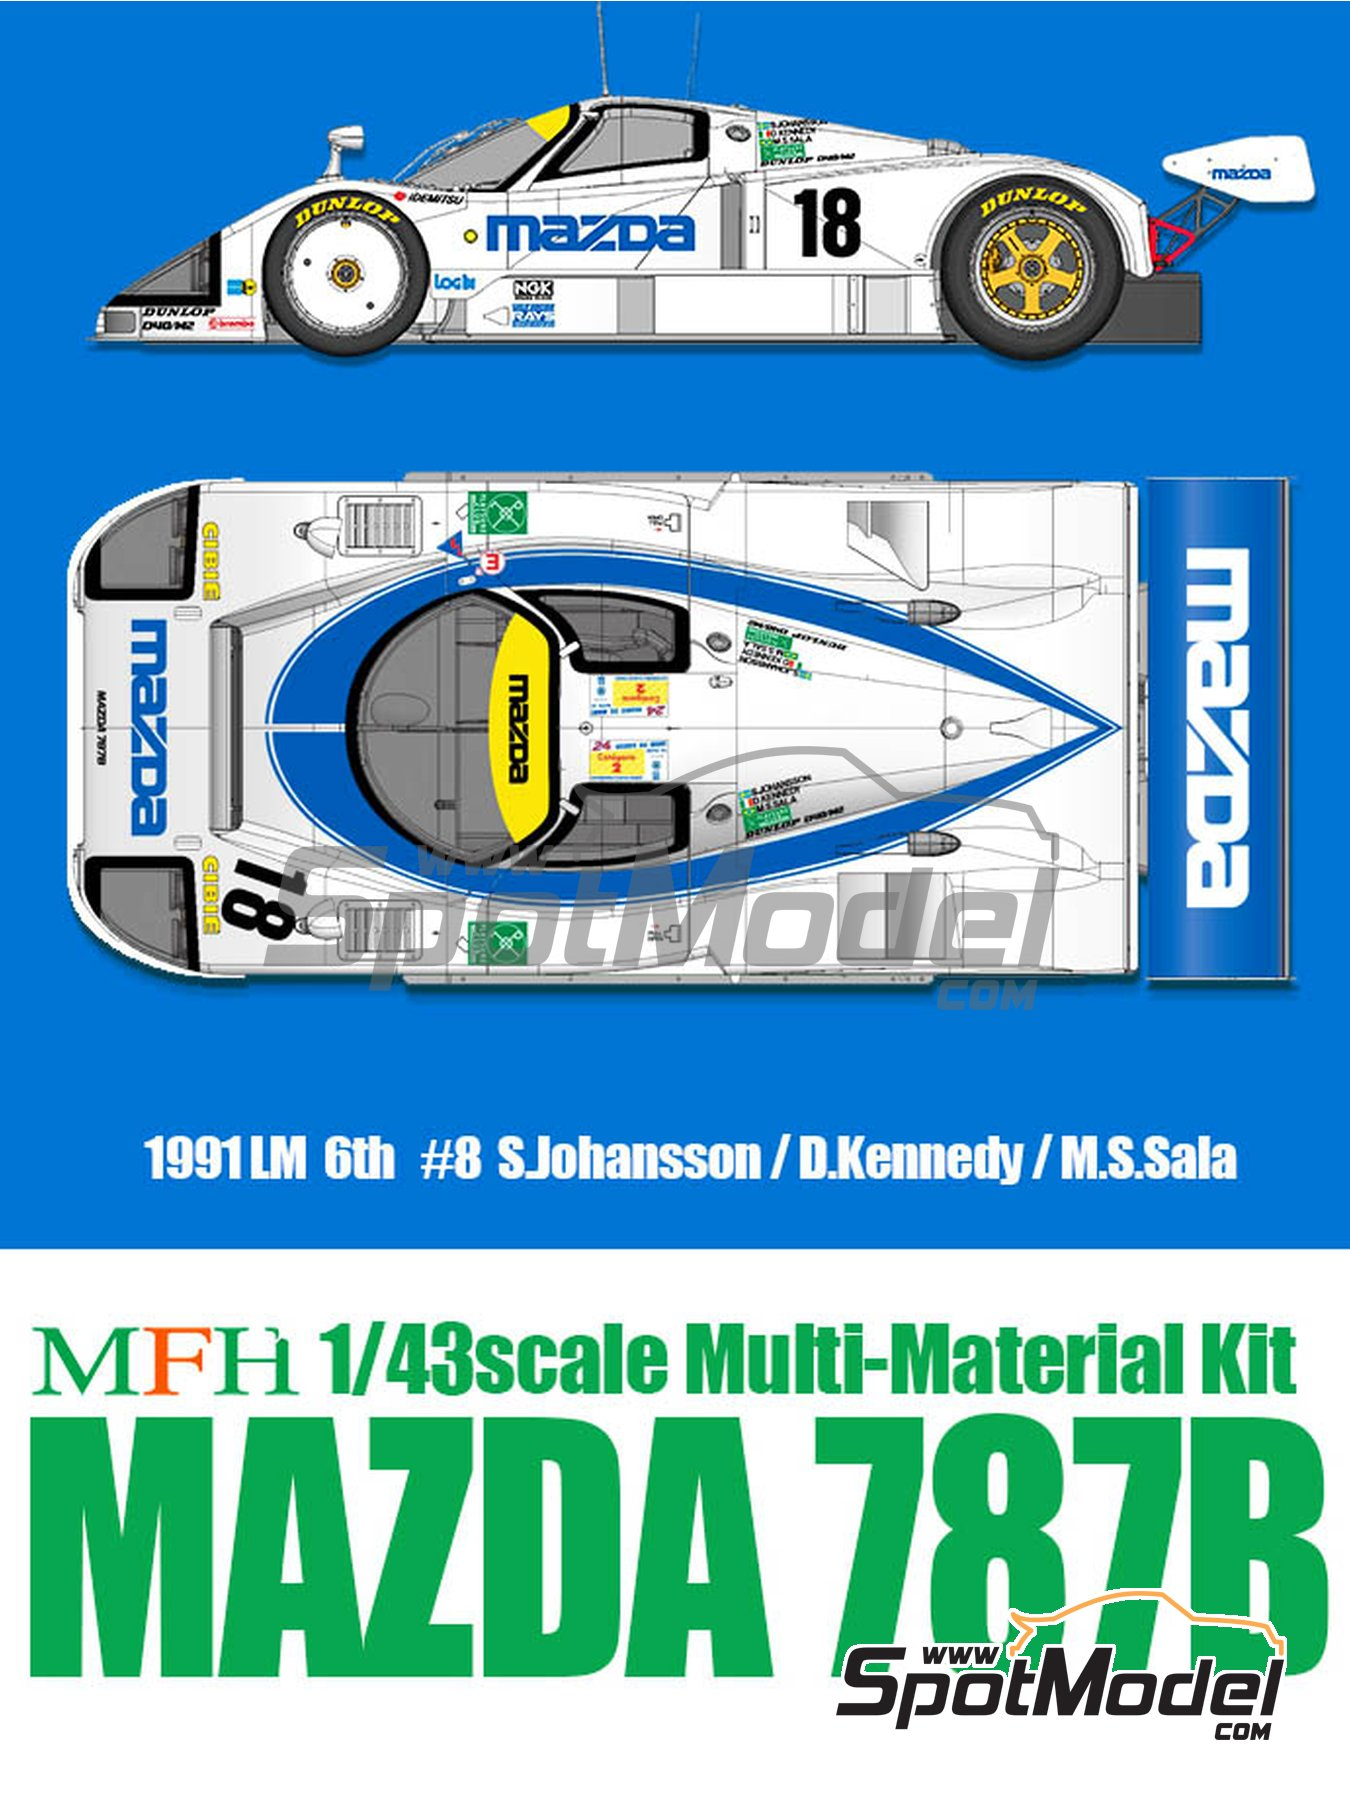 Mazda 787B Mazda - 24 Hours Le Mans 1991 | Model car kit in 1/43 scale manufactured by Model Factory Hiro (ref.MFH-K658, also K-658) image